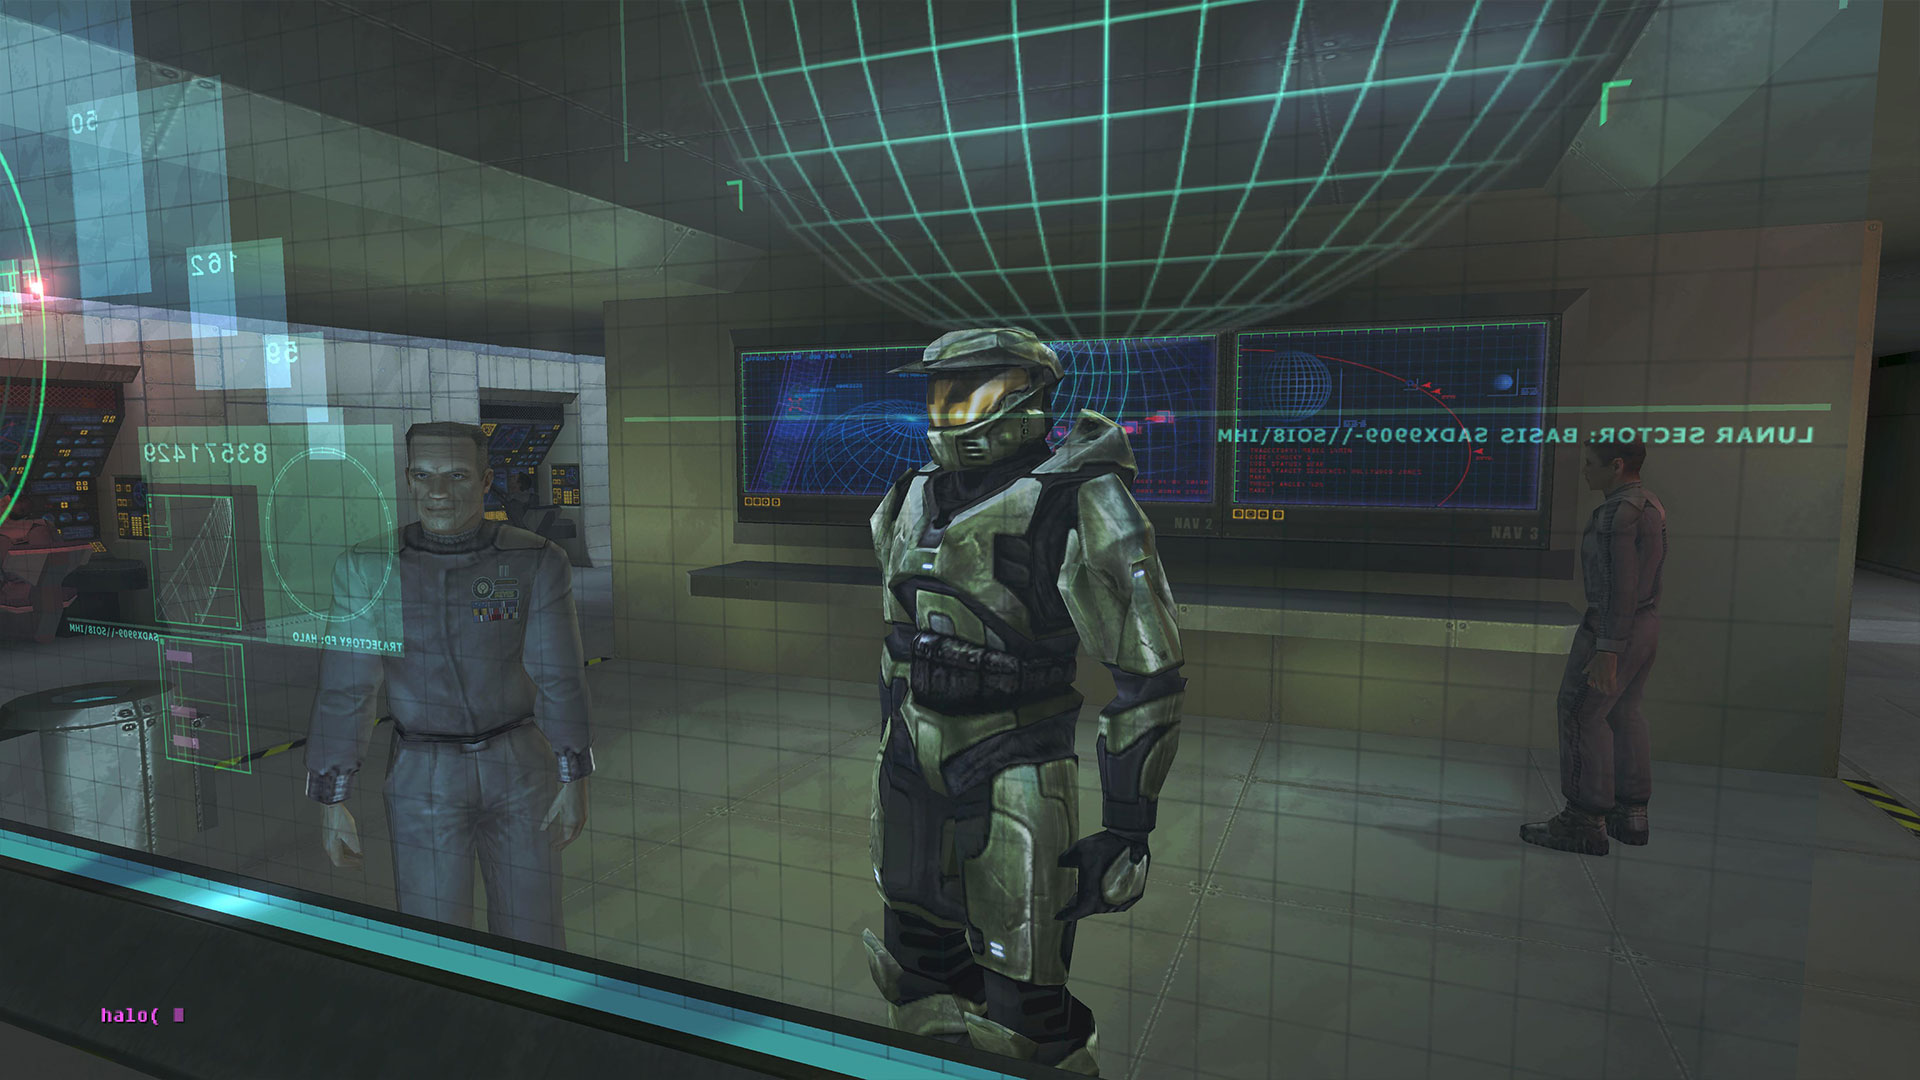 Halo The Master Chief Collection Screenshots Image 1759